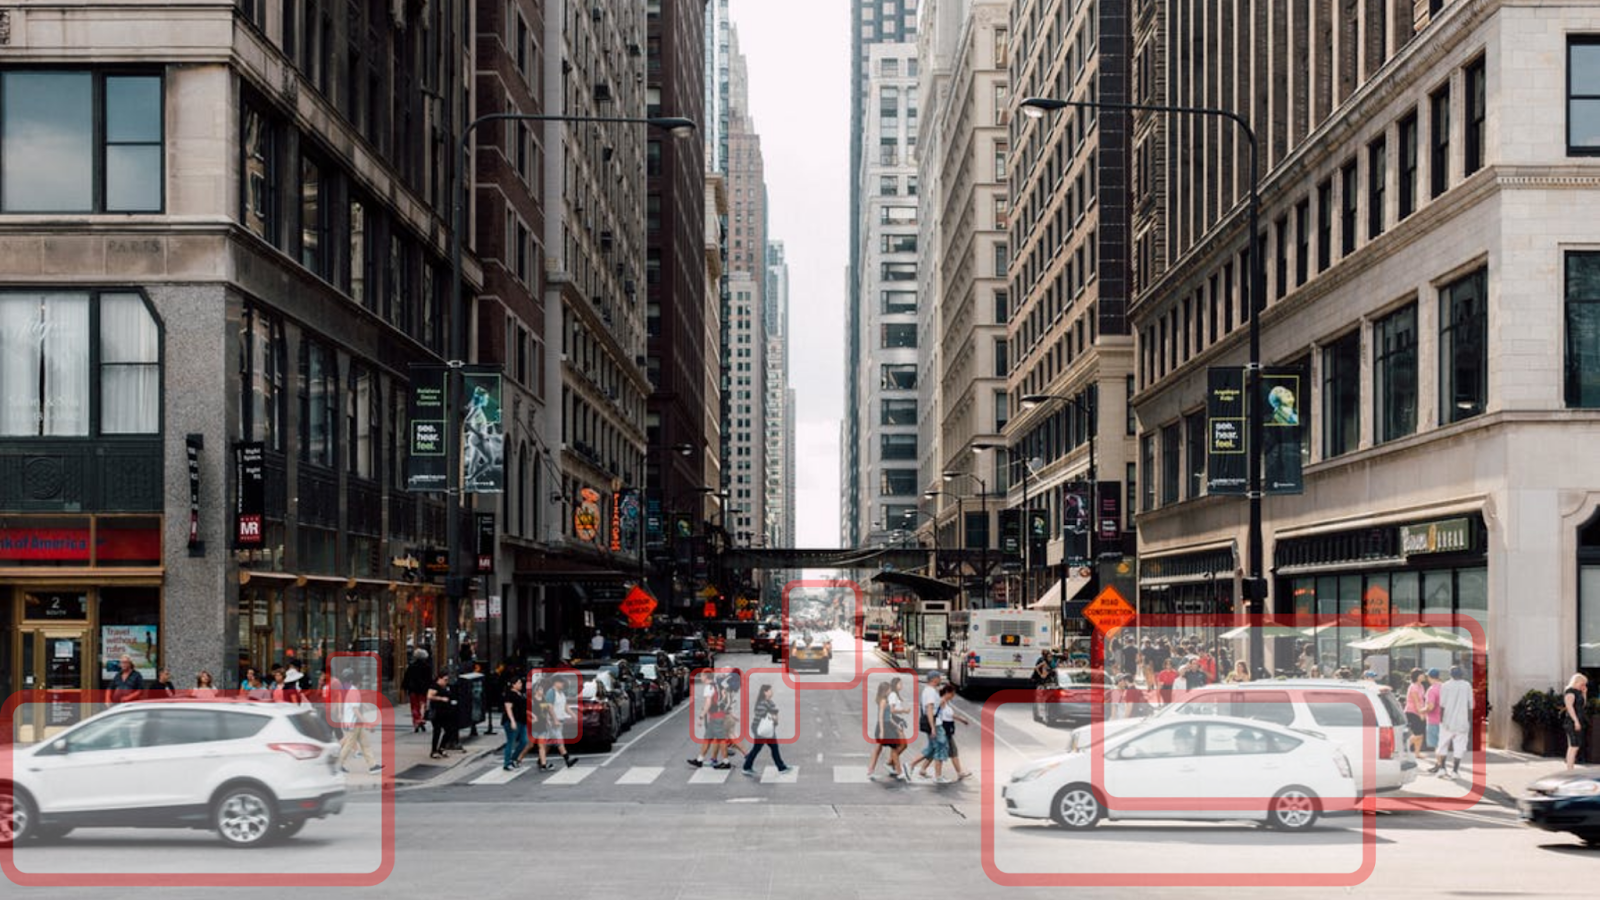 MMDetection: An Object Detection Python Tool - Analytics India Magazine